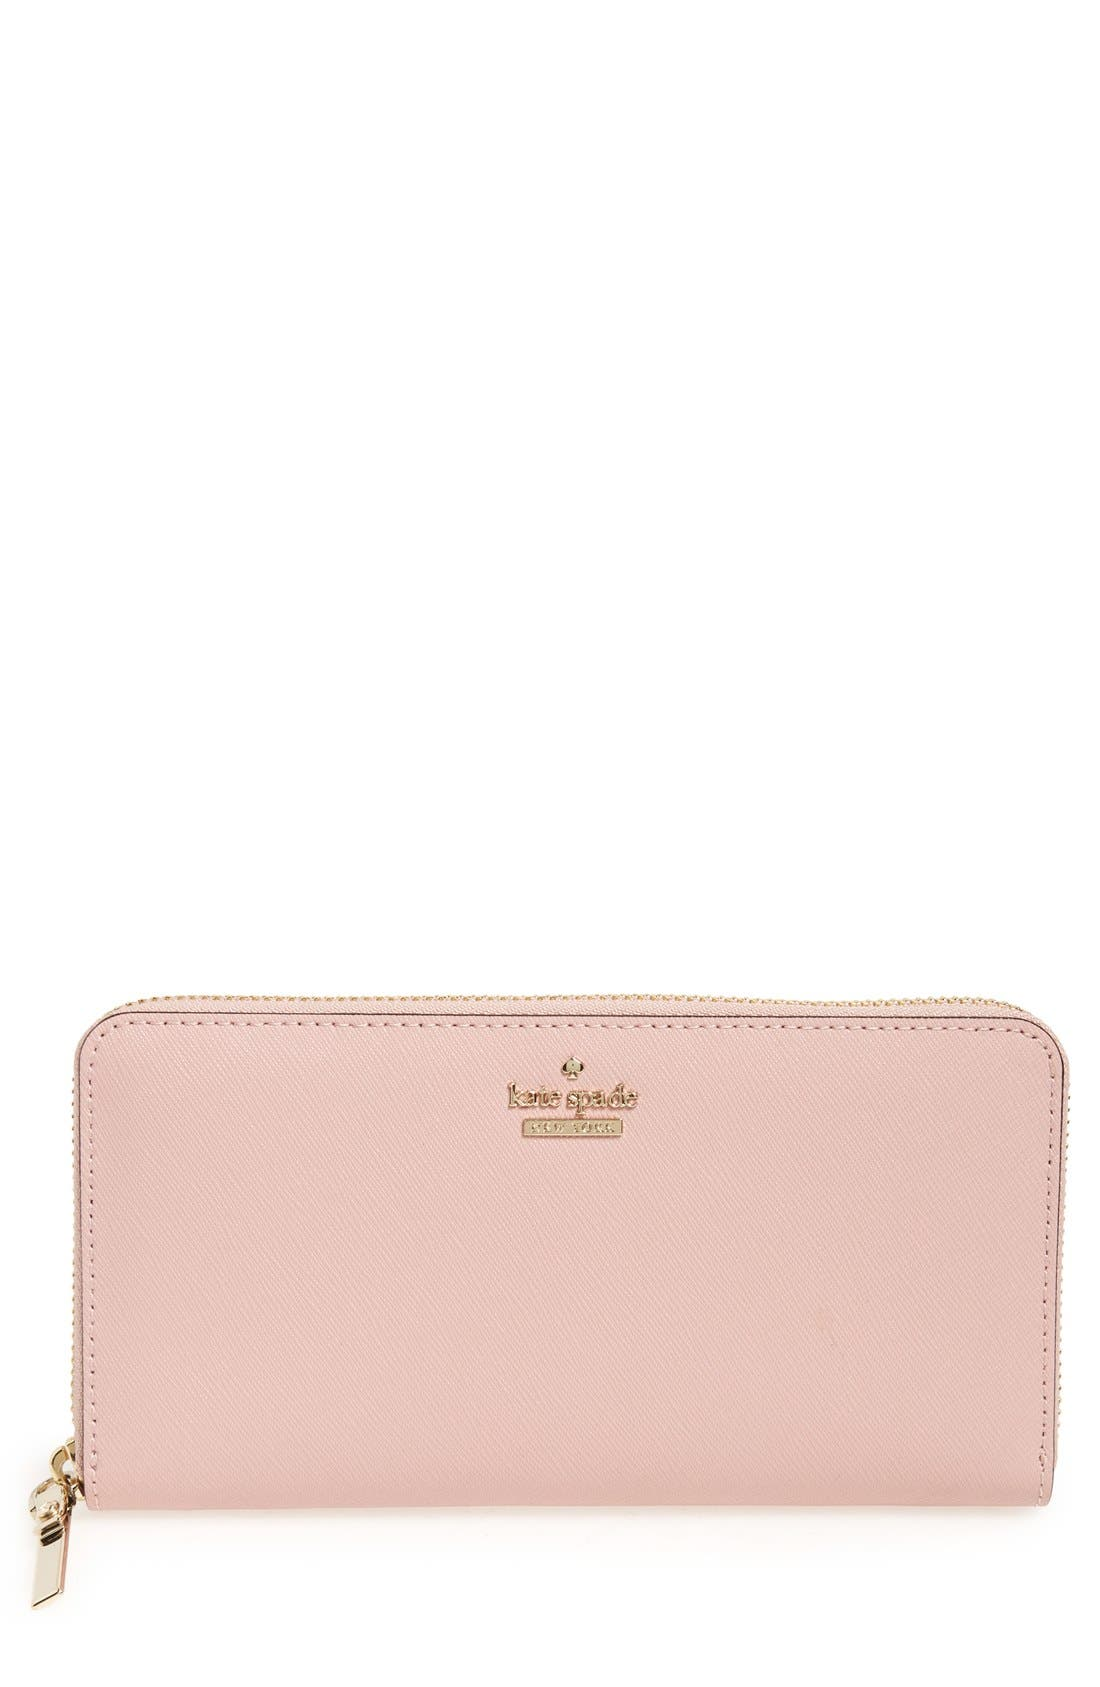 'cameron street - lacey' leather wallet,                             Main thumbnail 18, color,